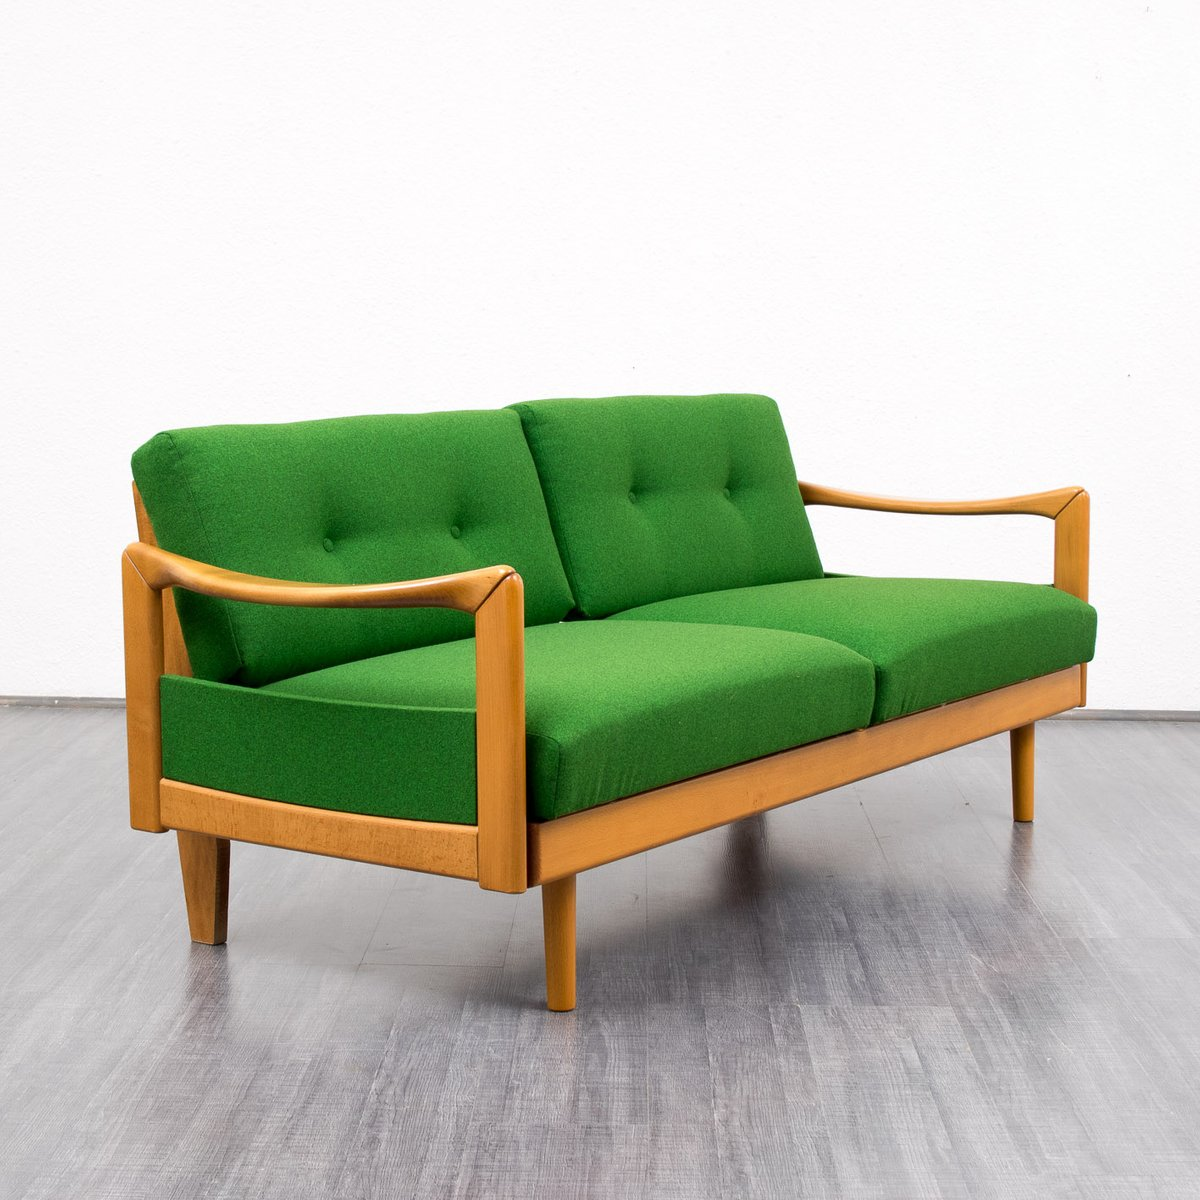 Vintage Green Sofa 1960s For Sale At Pamono